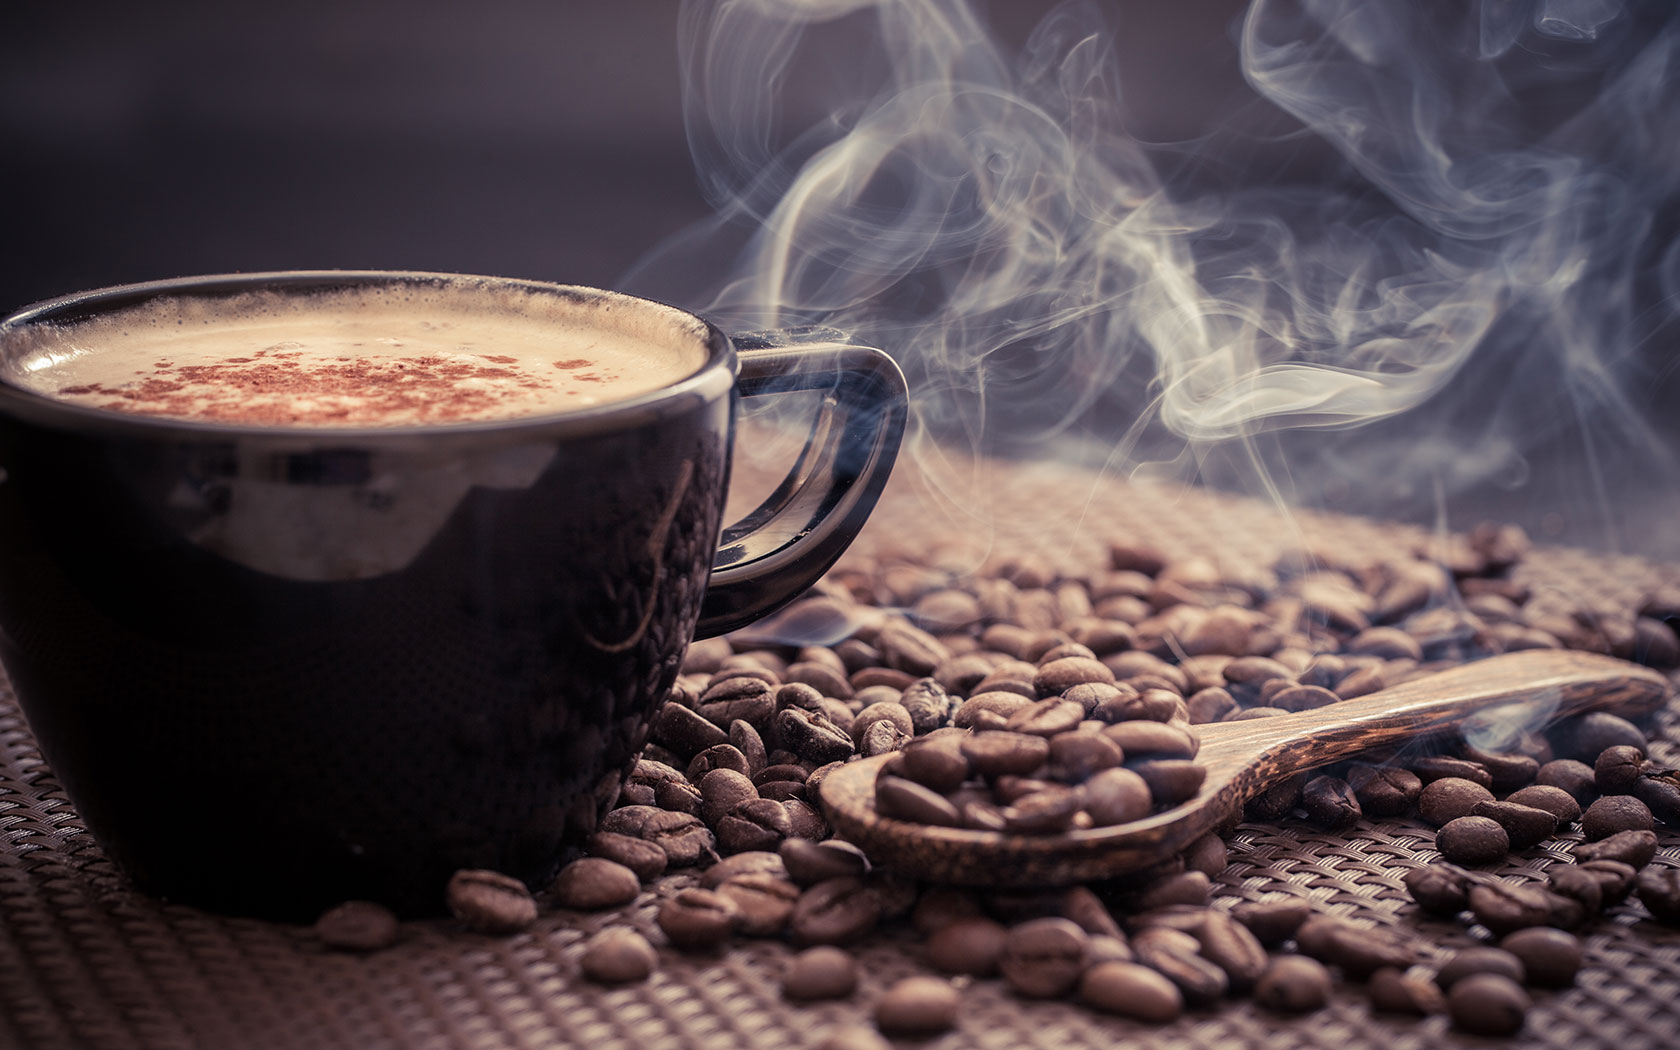 Cup Of Coffee Images: When Is The Best Time To Drink Coffee?